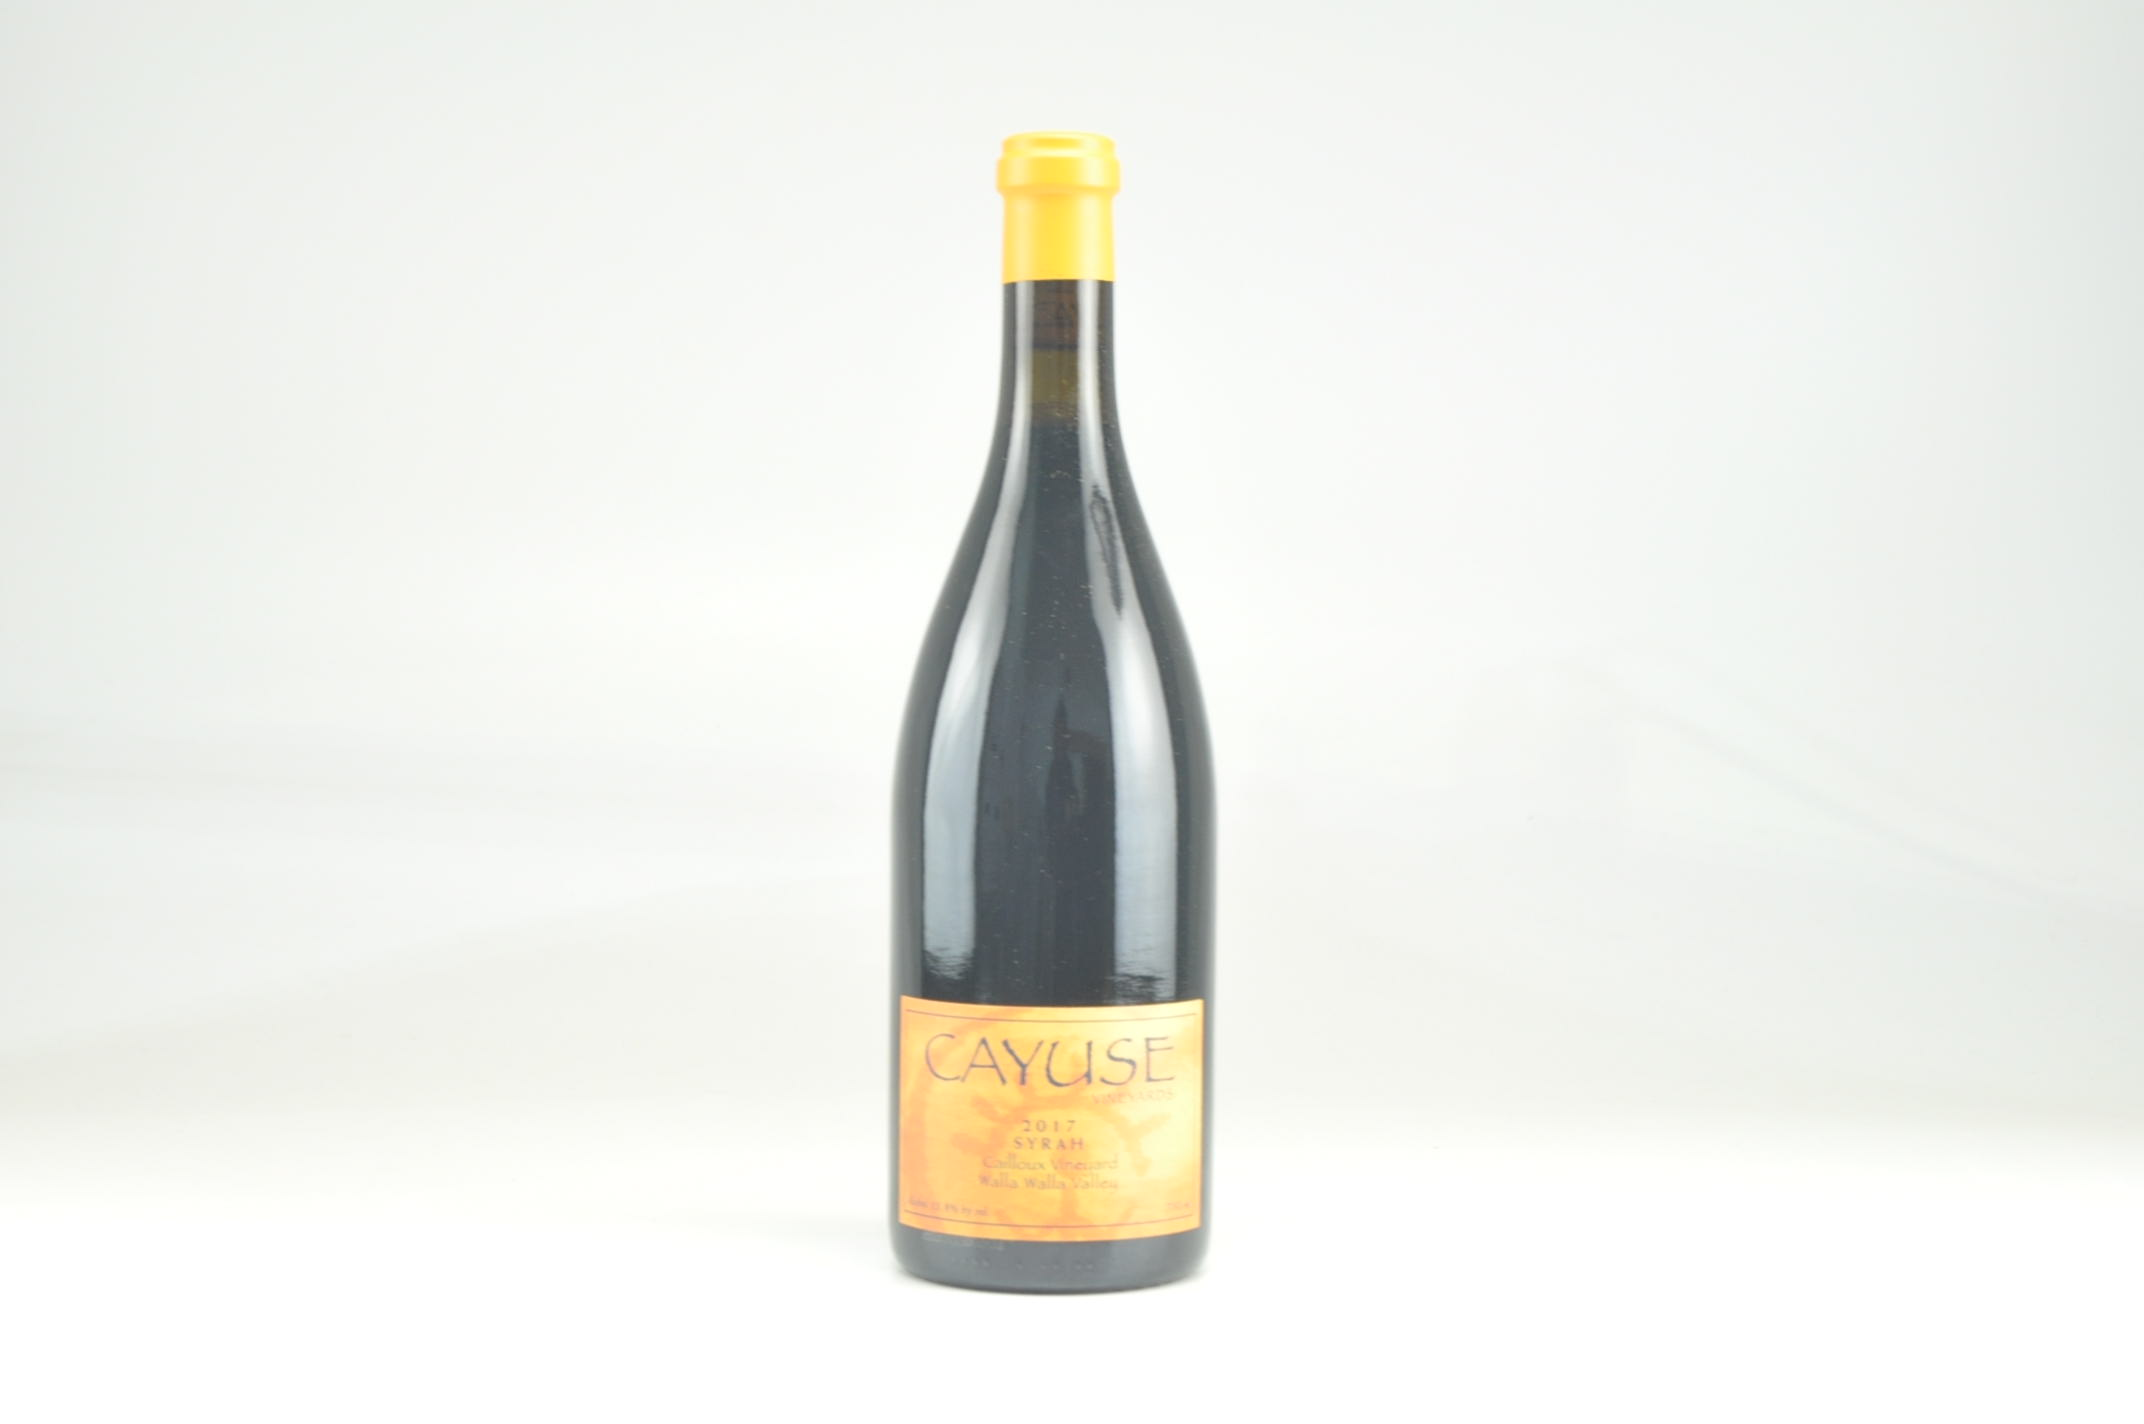 2013 Cayuse Syrah Cailloux Vineyard, Walla Walla Valley RP--94